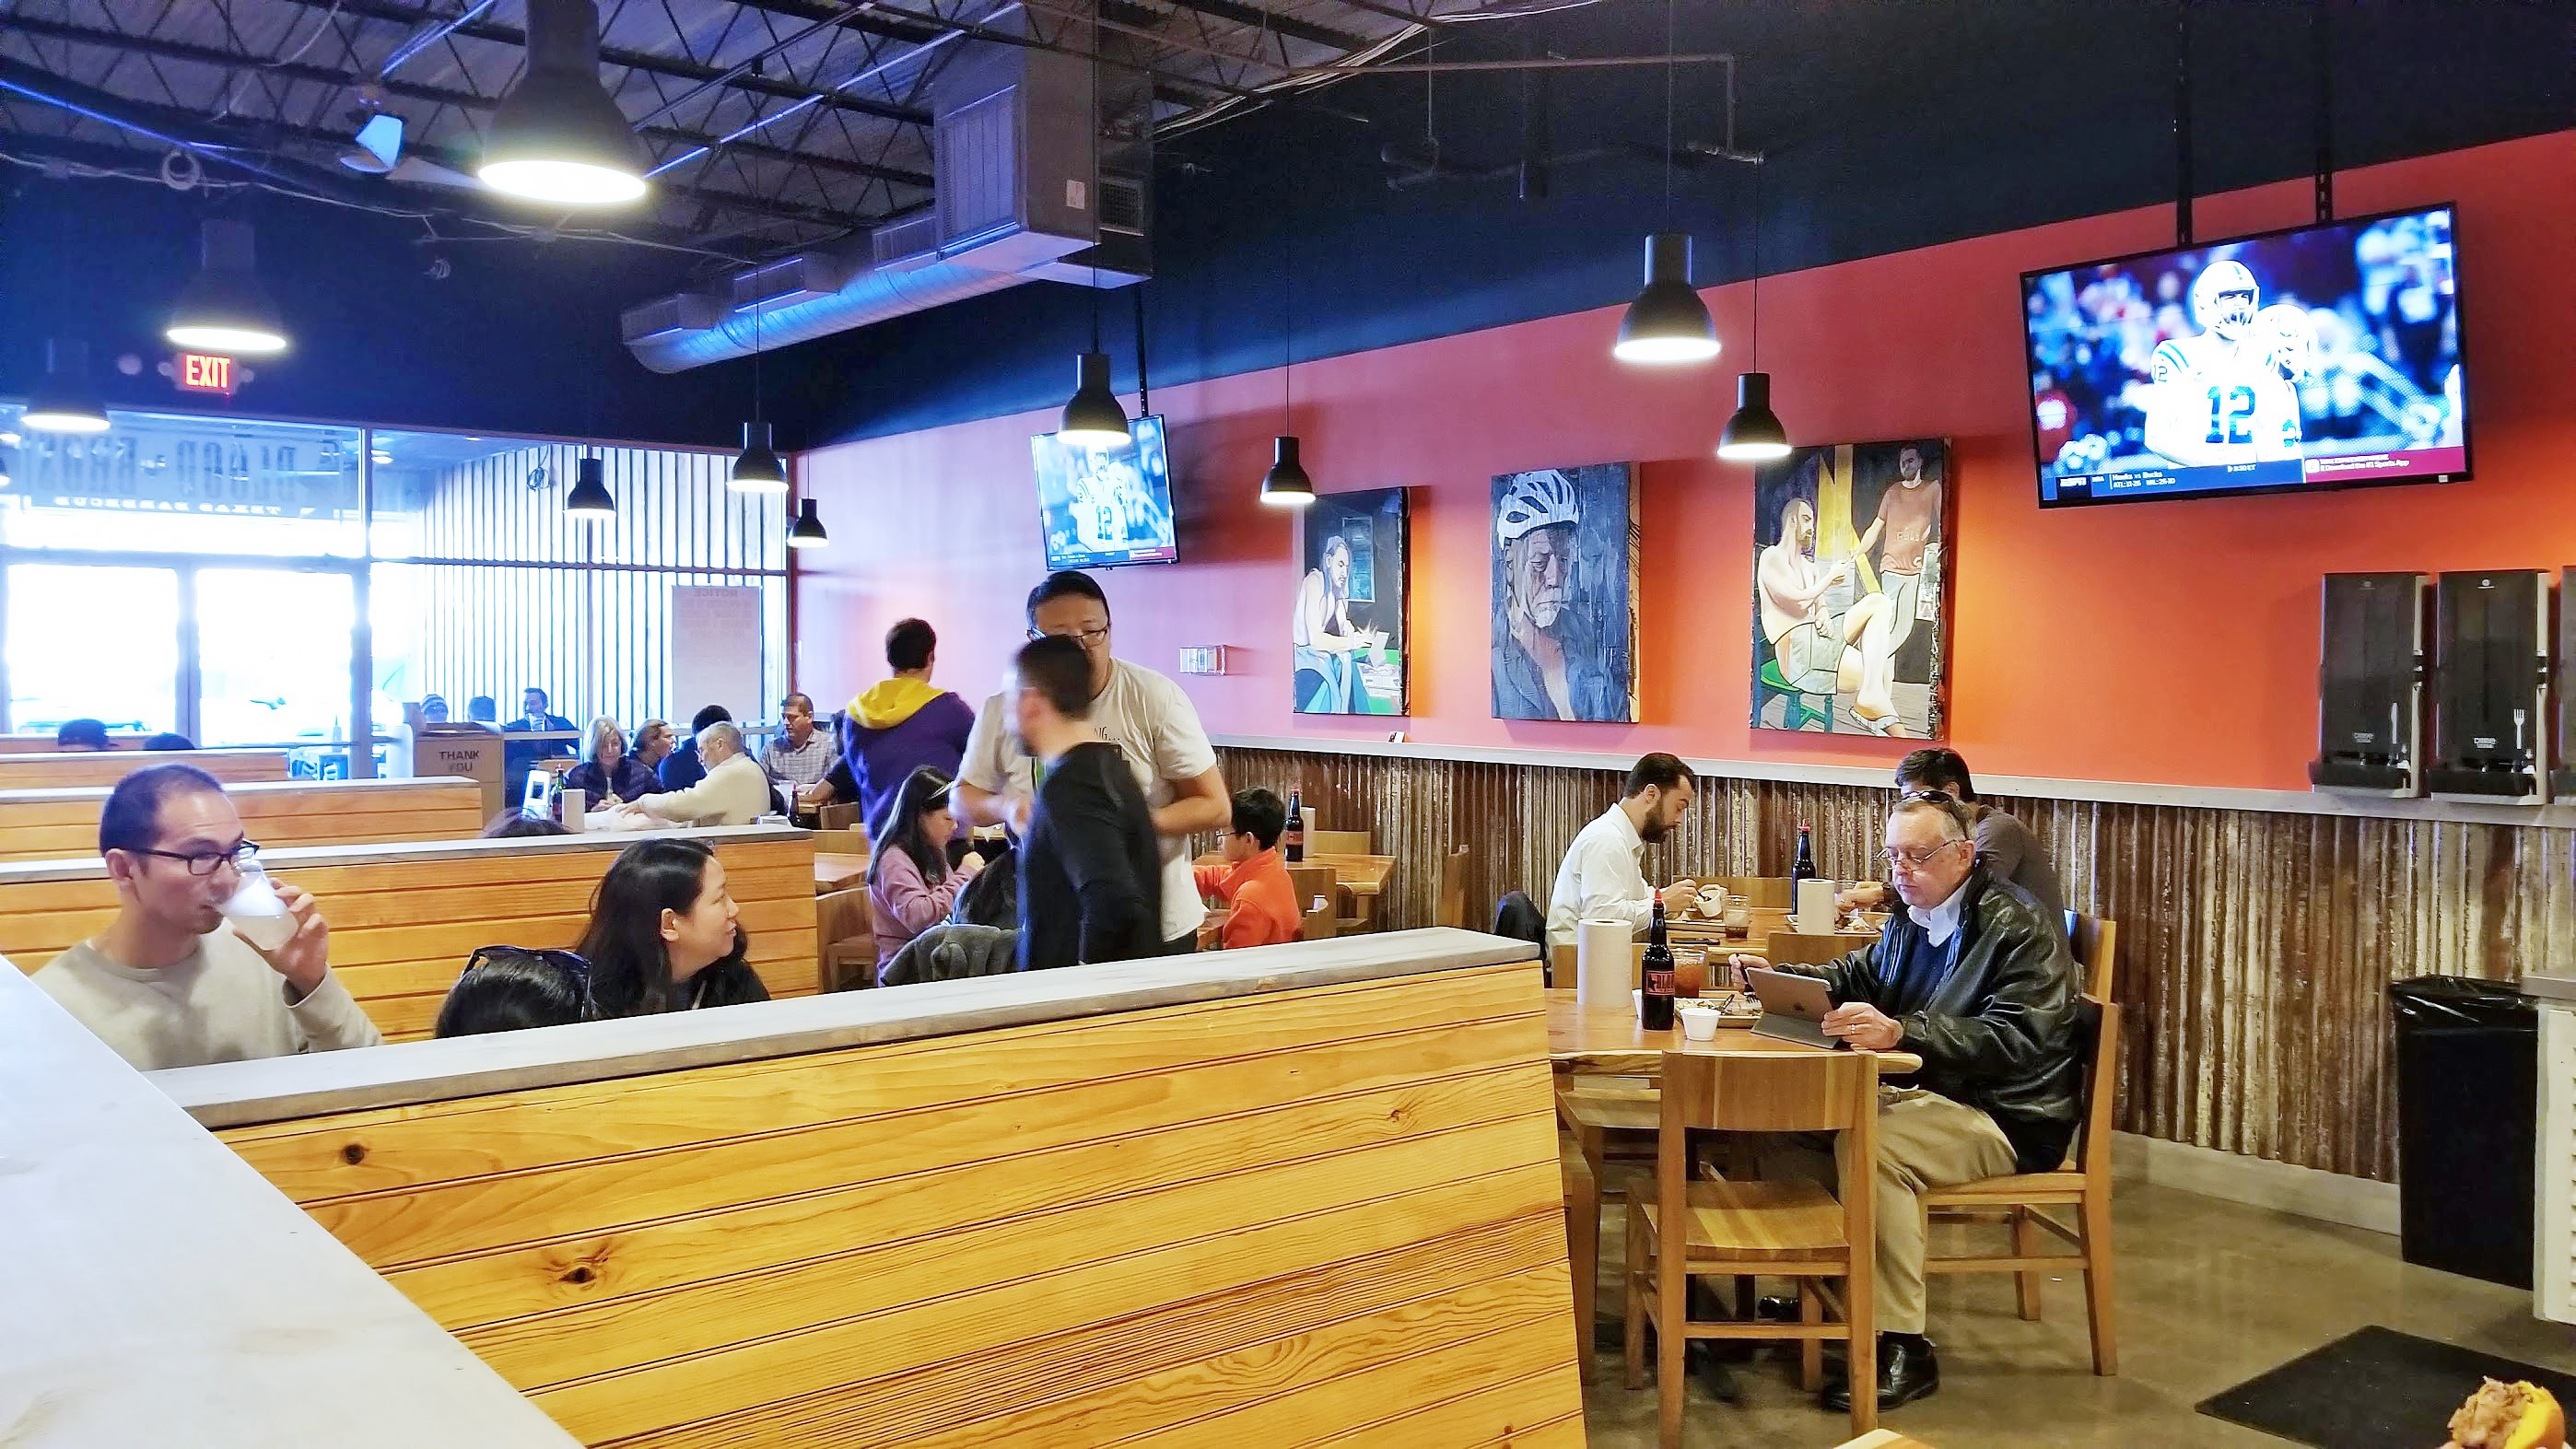 Blood Bros. BBQ is open in the Bellaire Triangle serving classic Texas 'cue.